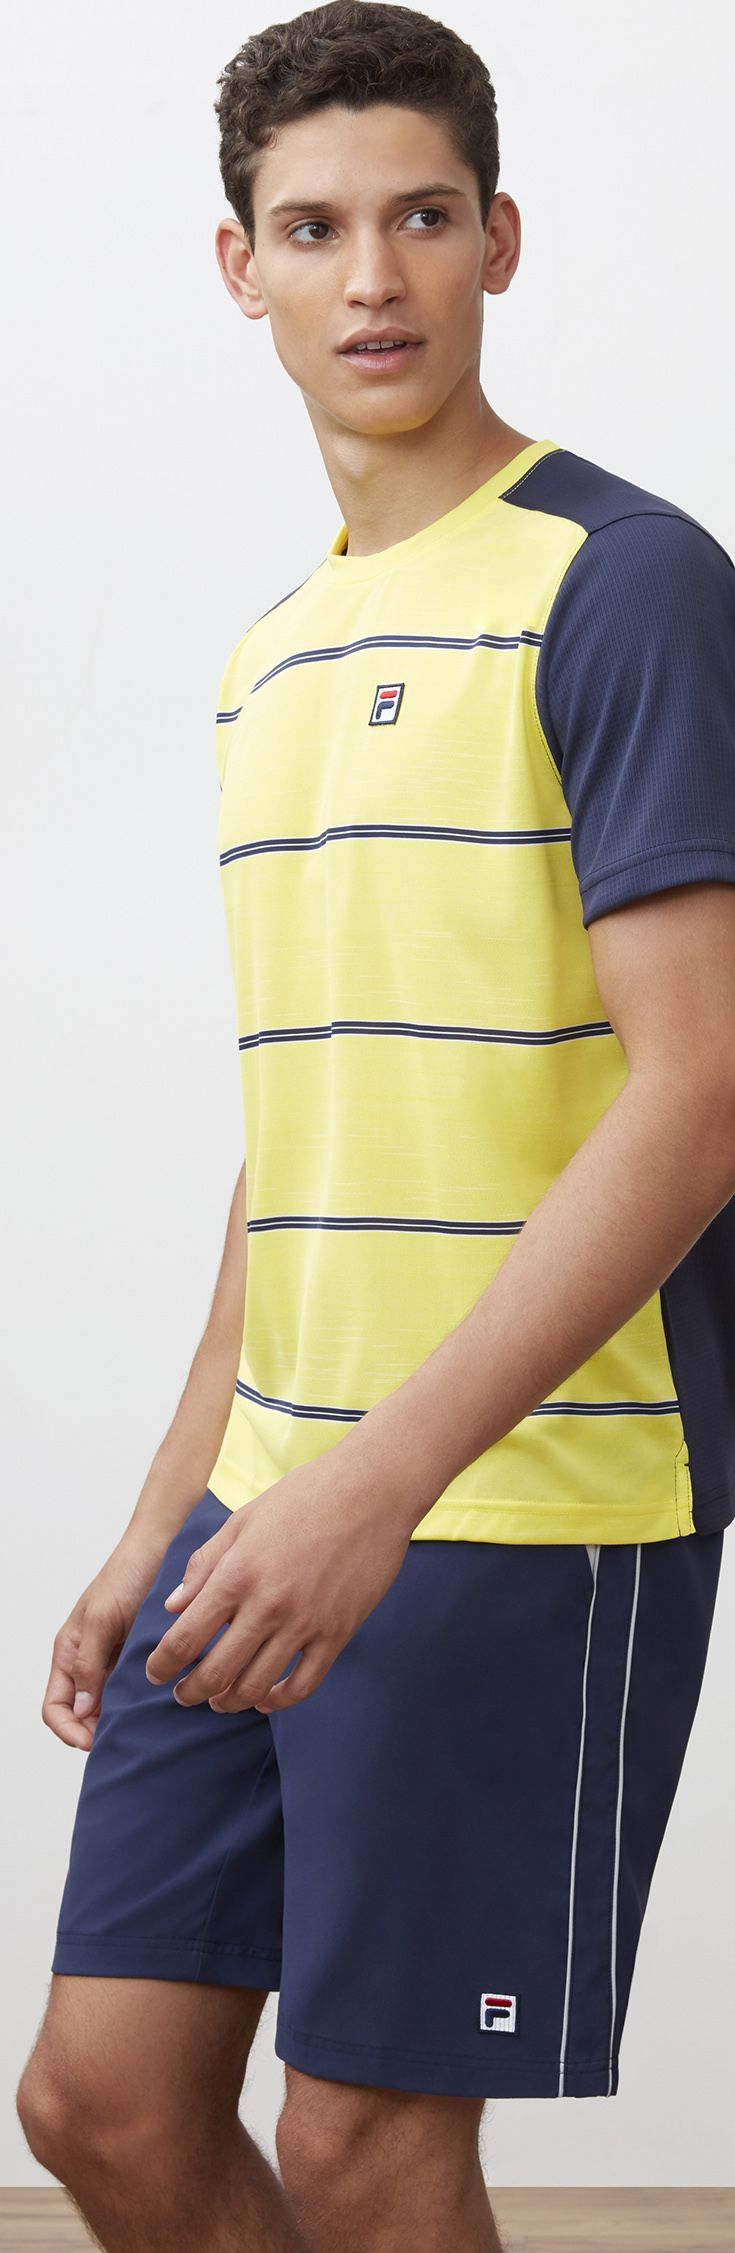 5f13405076d9 Check out the newest Fila men's Legend Collection of premium tennis apparel  for spring 2018 at MidwestSports.com. This tennis line includes performance  ...